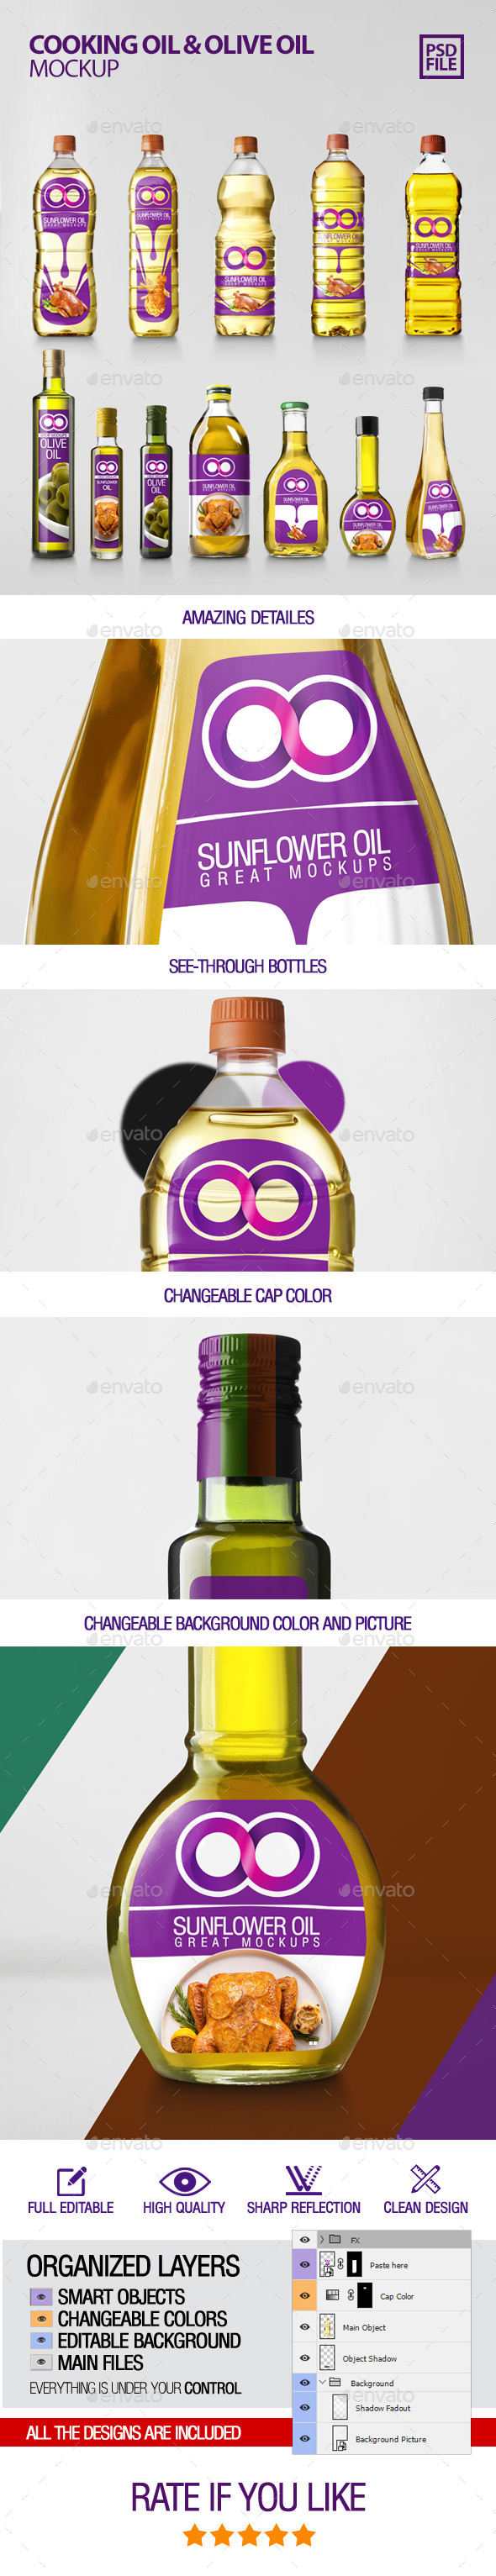 Cooking Oil & Olive Oil Bottle Mockup - Packaging Product Mock-Ups